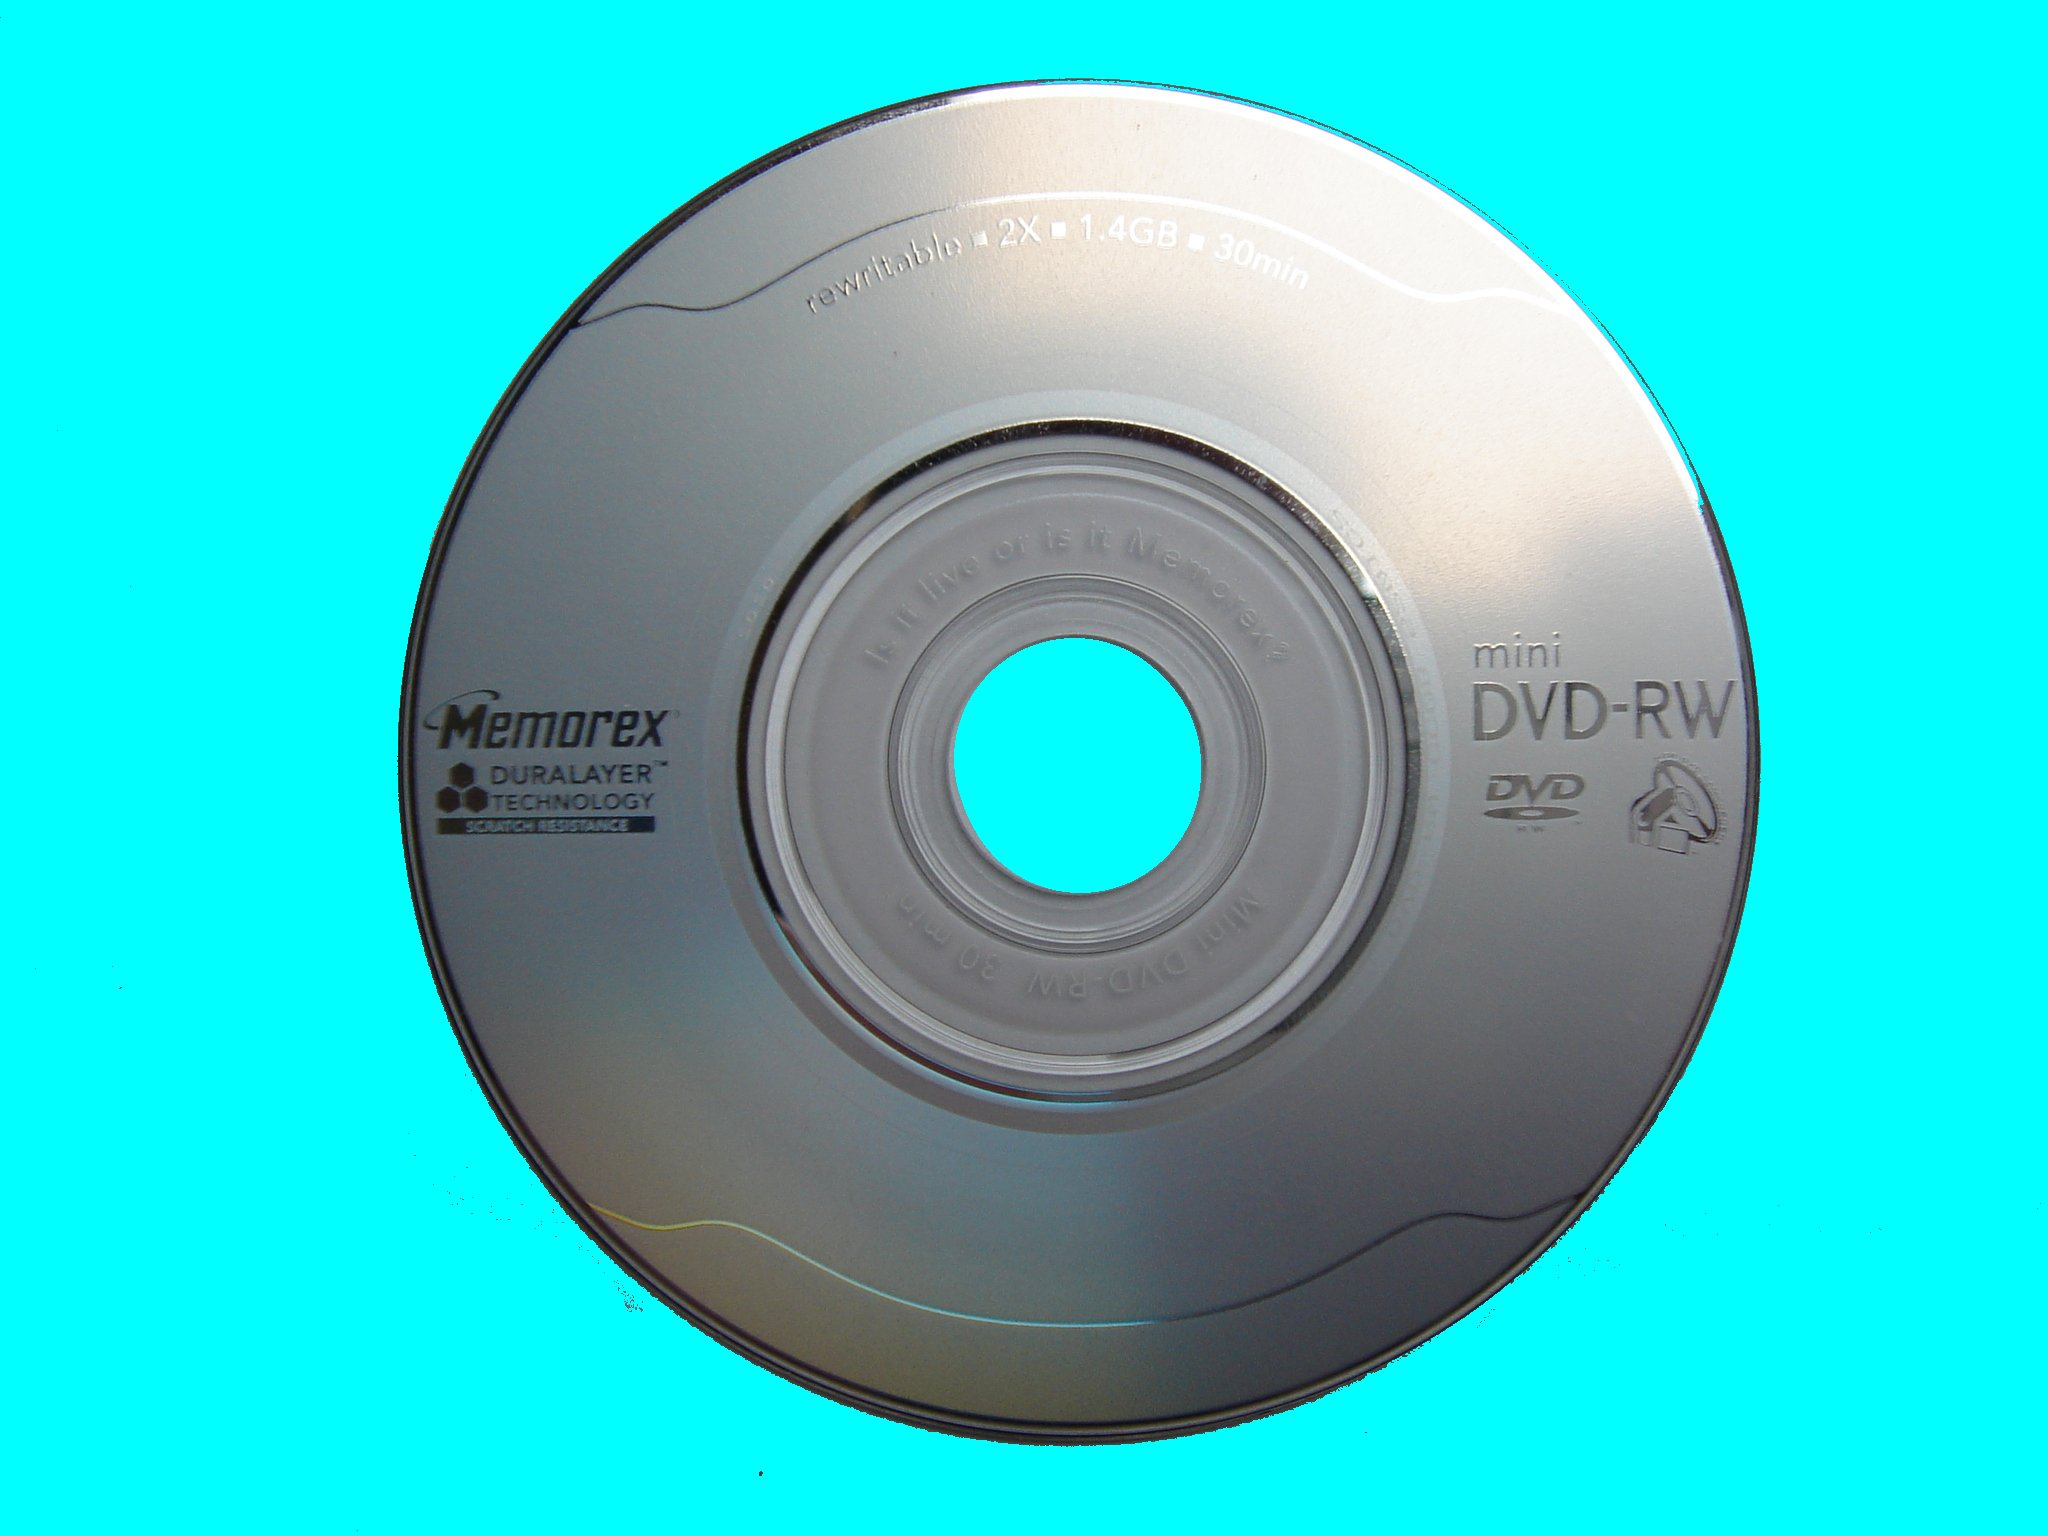 A Memorex mini DVD from a Panasonic DVD recorder. The disk underwent finalization but after copying it, the dvd player freezes and stutters on playback.